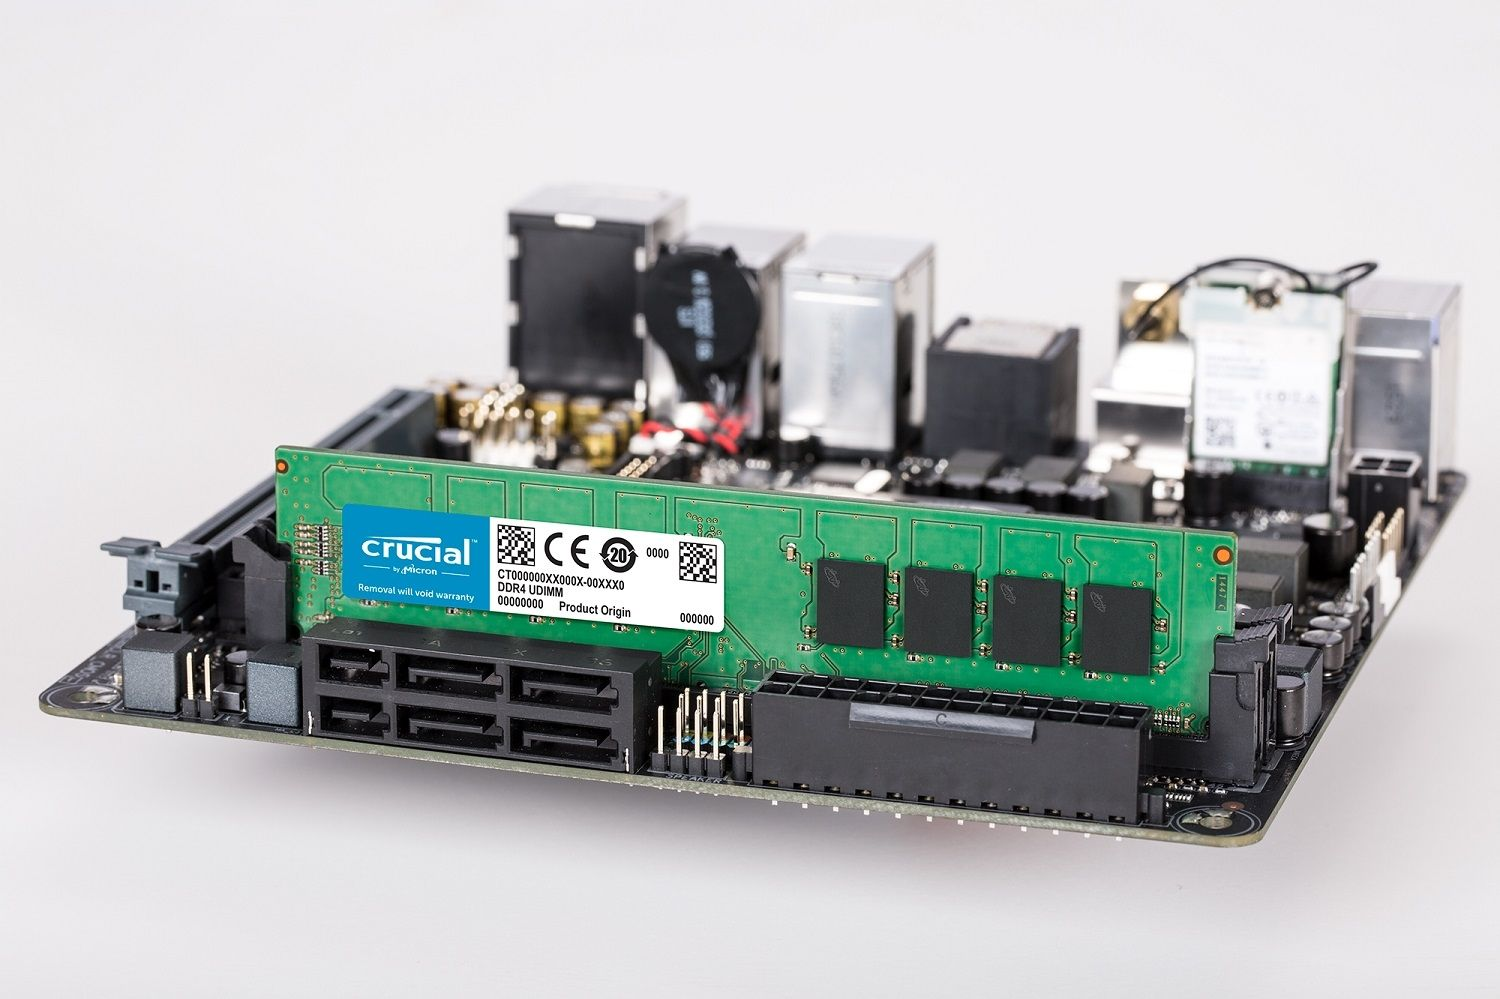 A Crucial DDR4 UDIMM RAM memory module in position on a pc's motherboard